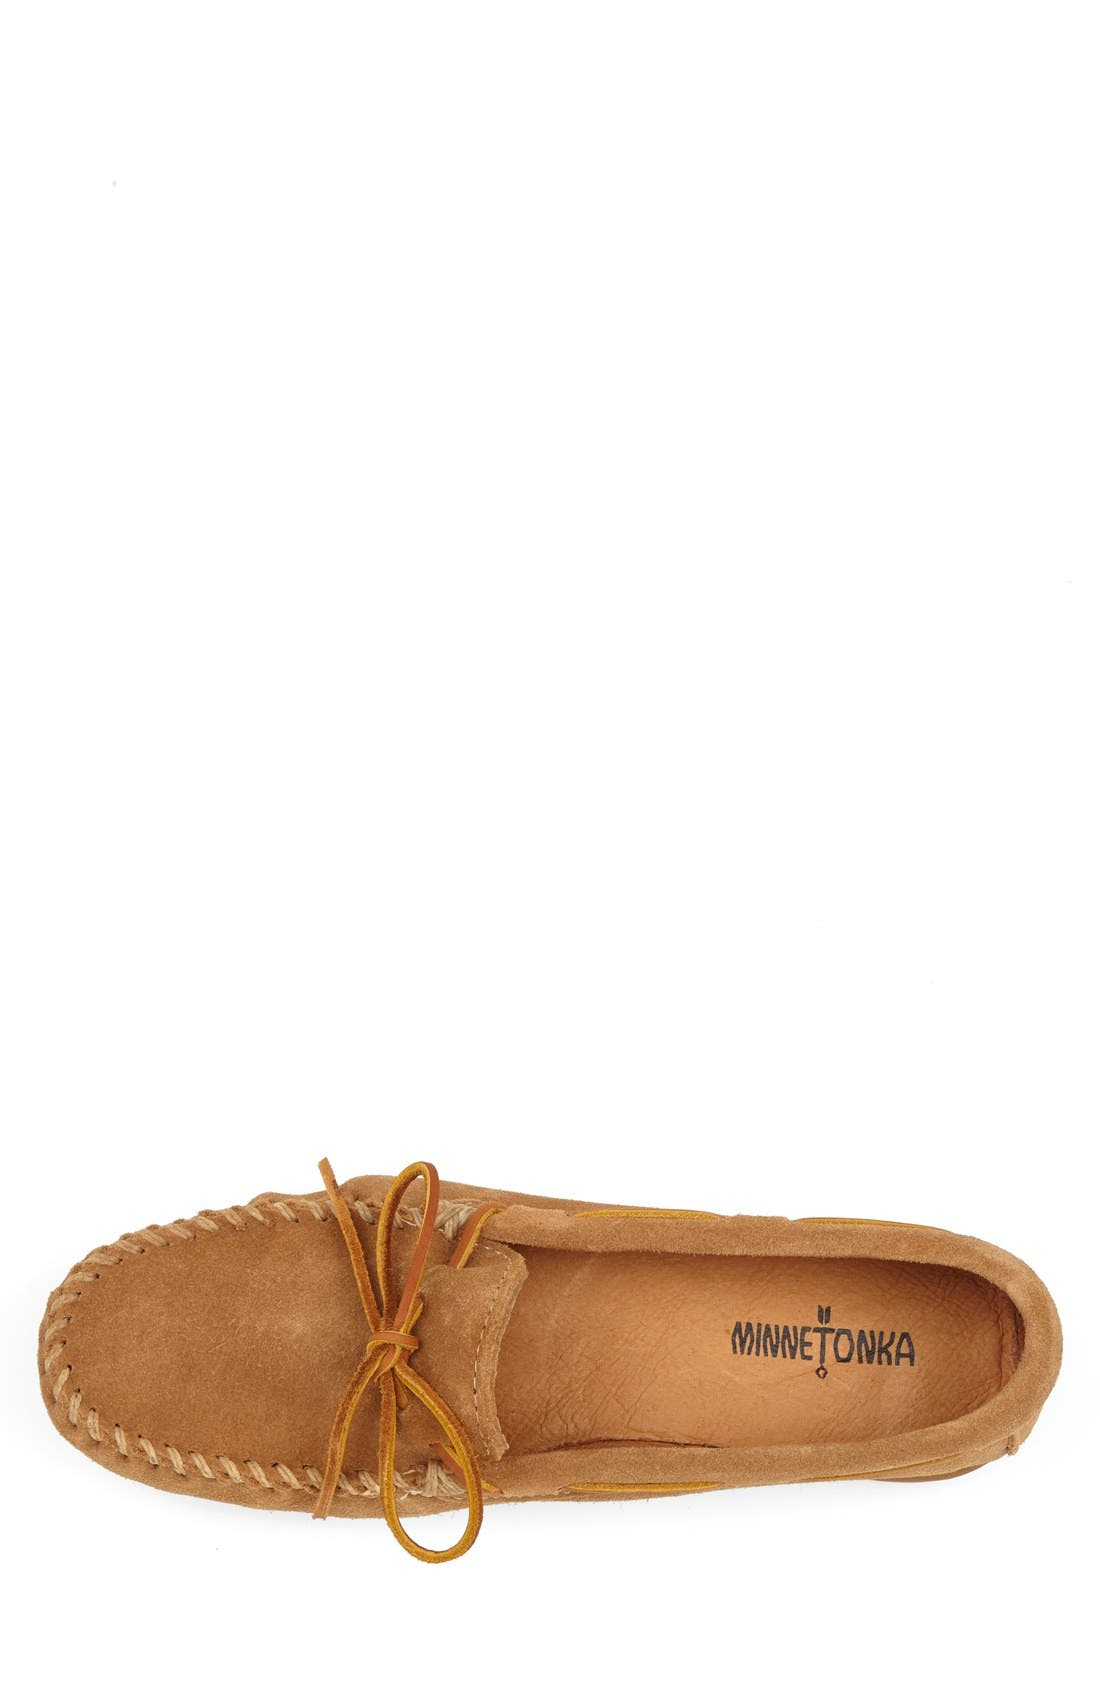 MINNETONKA, Suede Driving Shoe, Alternate thumbnail 4, color, TAUPE